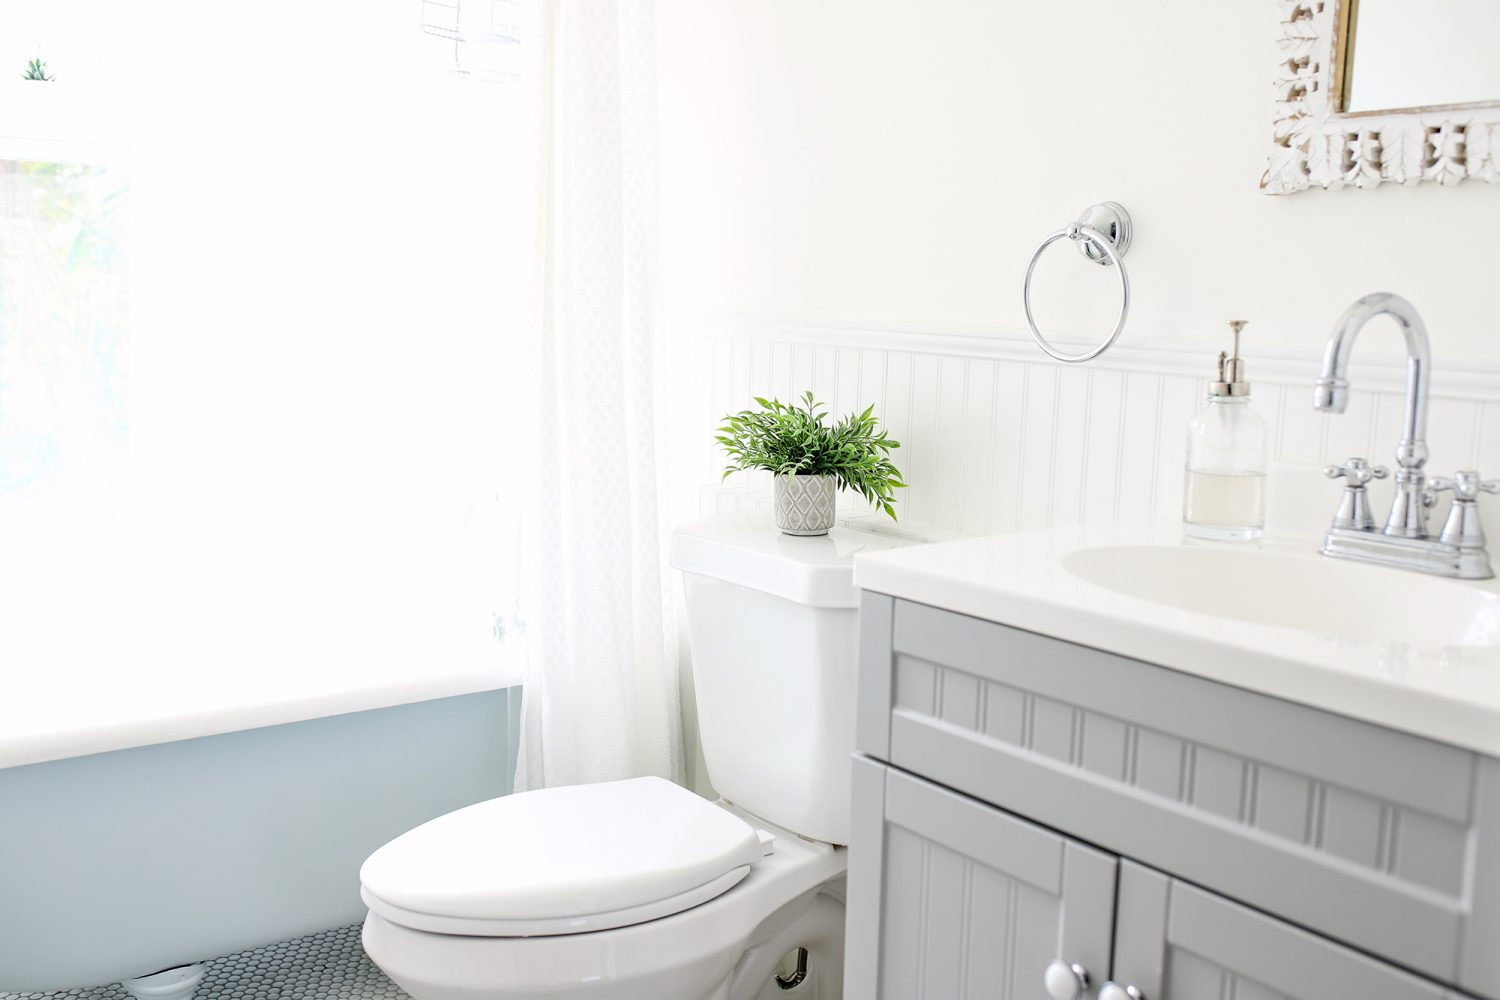 Beautiful white and gray bathroom in an AirBnB